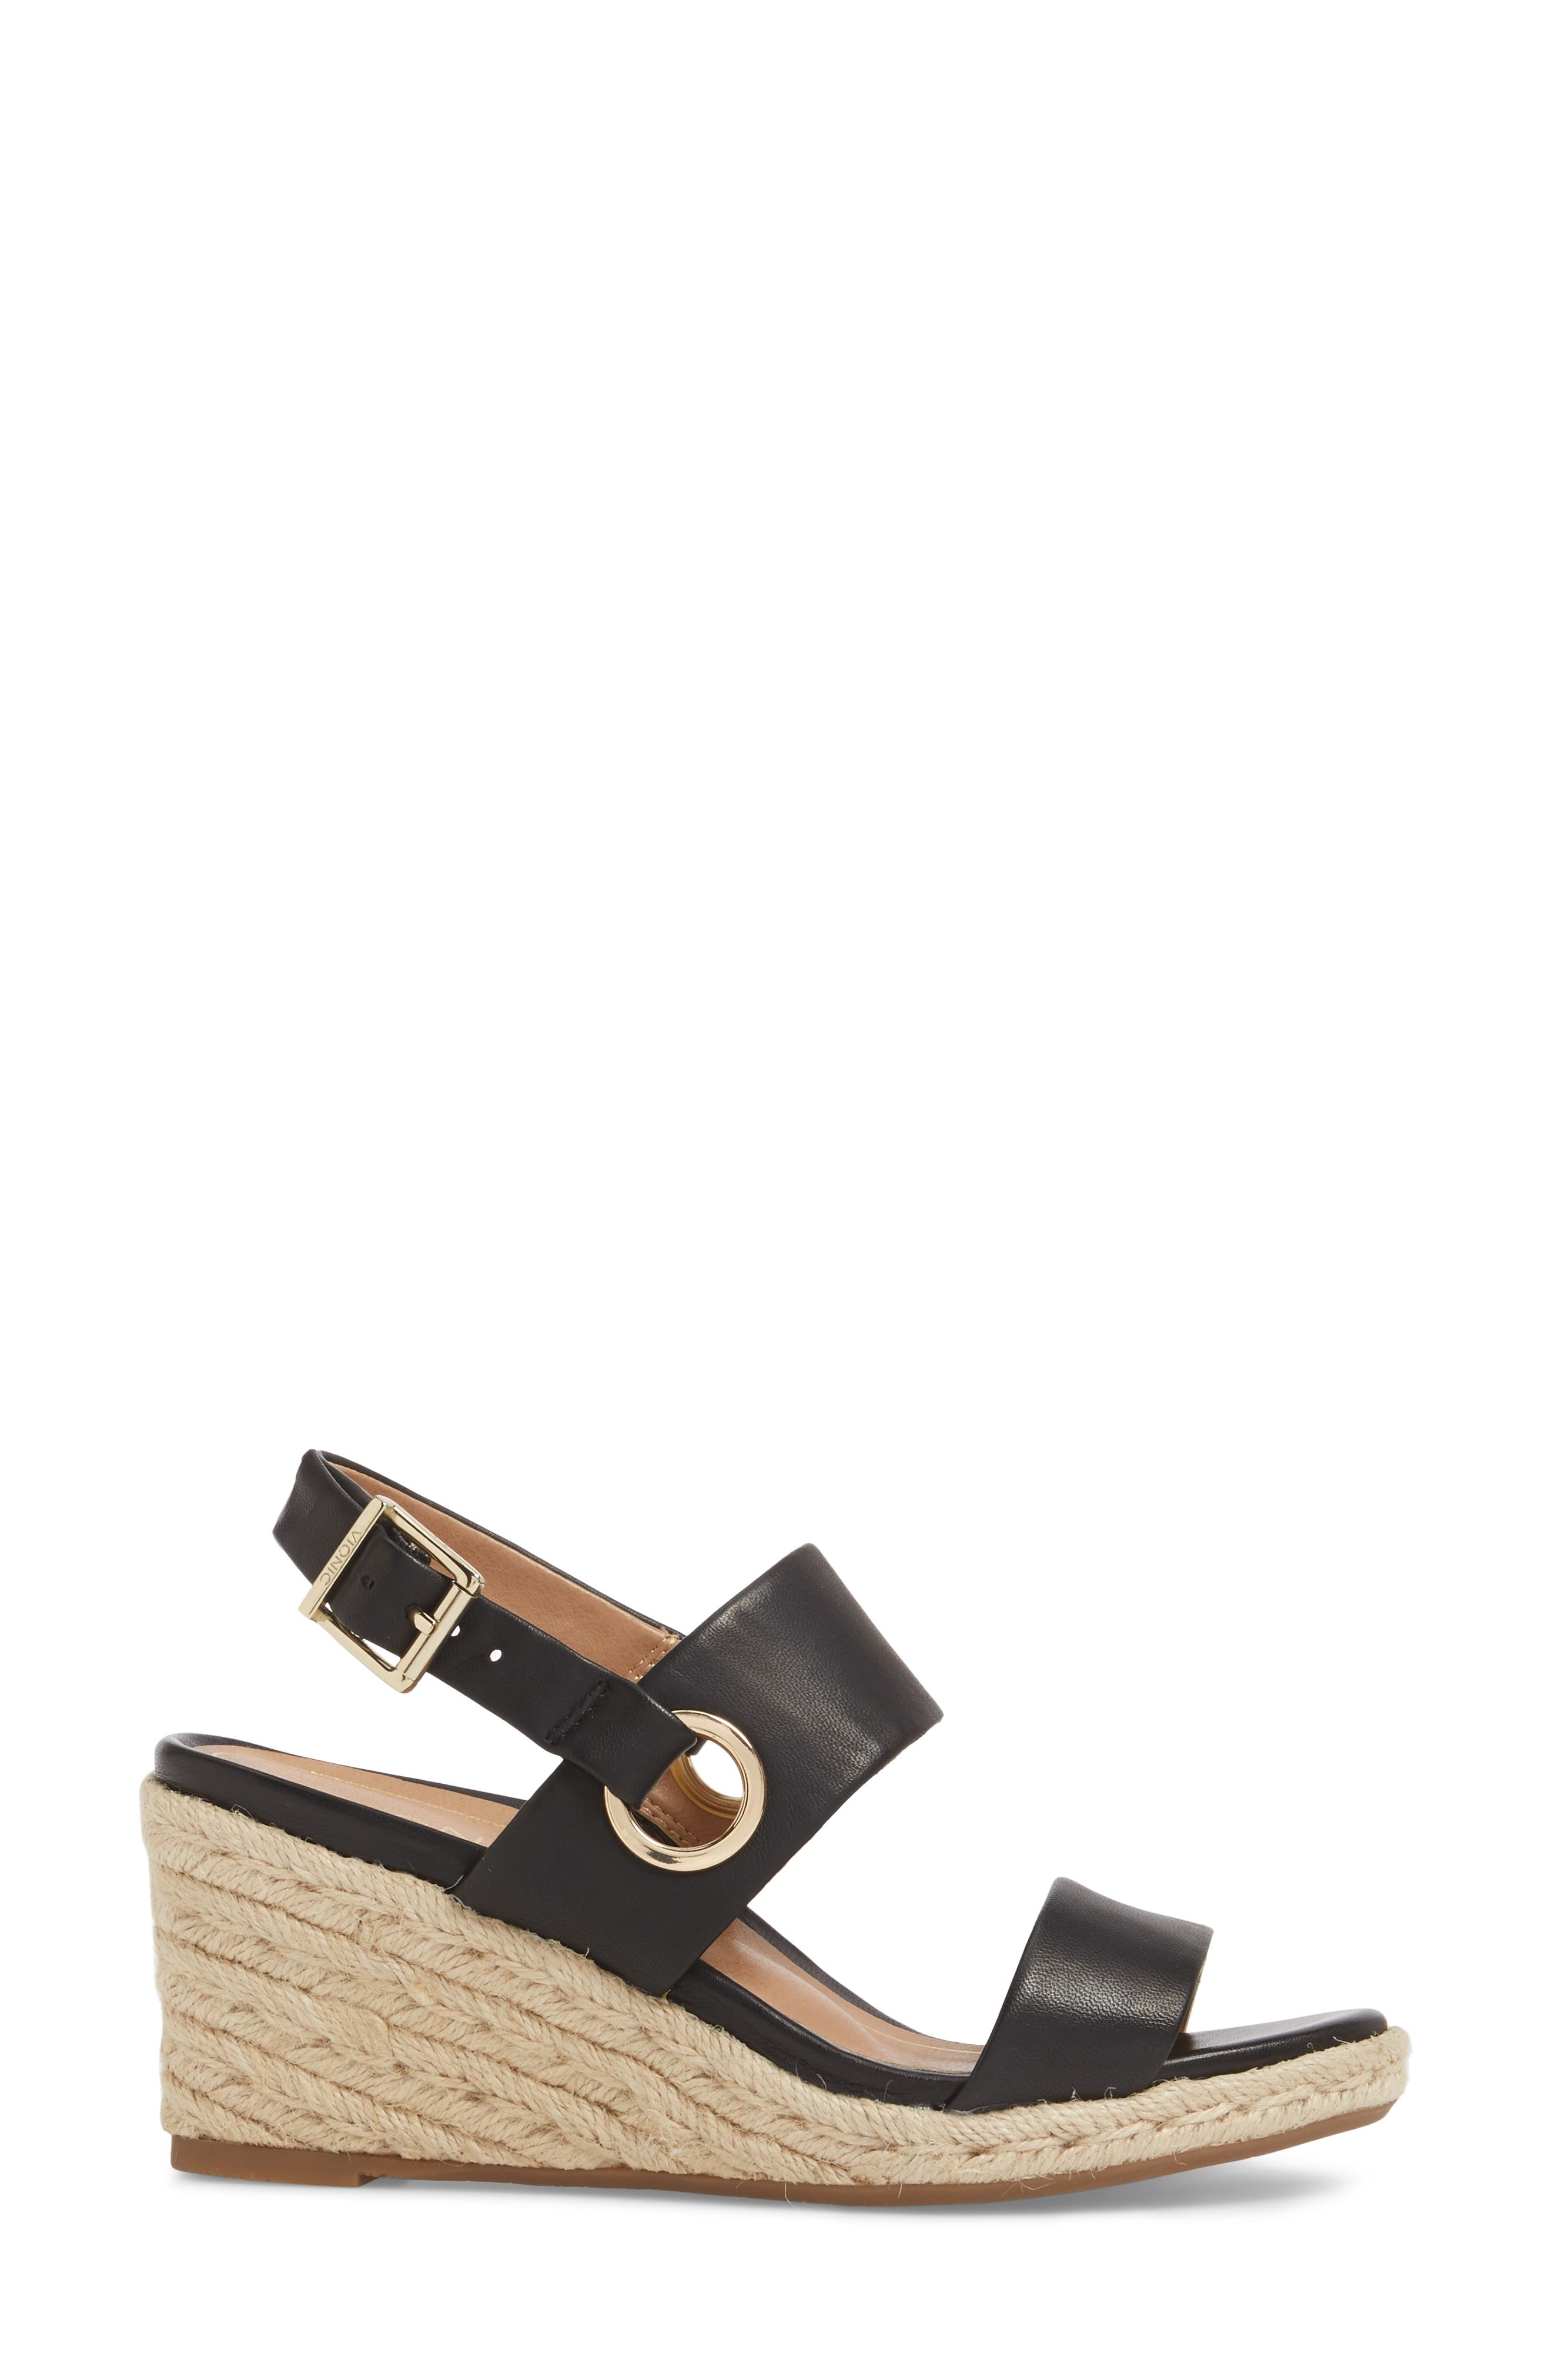 Vero Espadrille Wedge,                             Alternate thumbnail 3, color,                             BLACK LEATHER